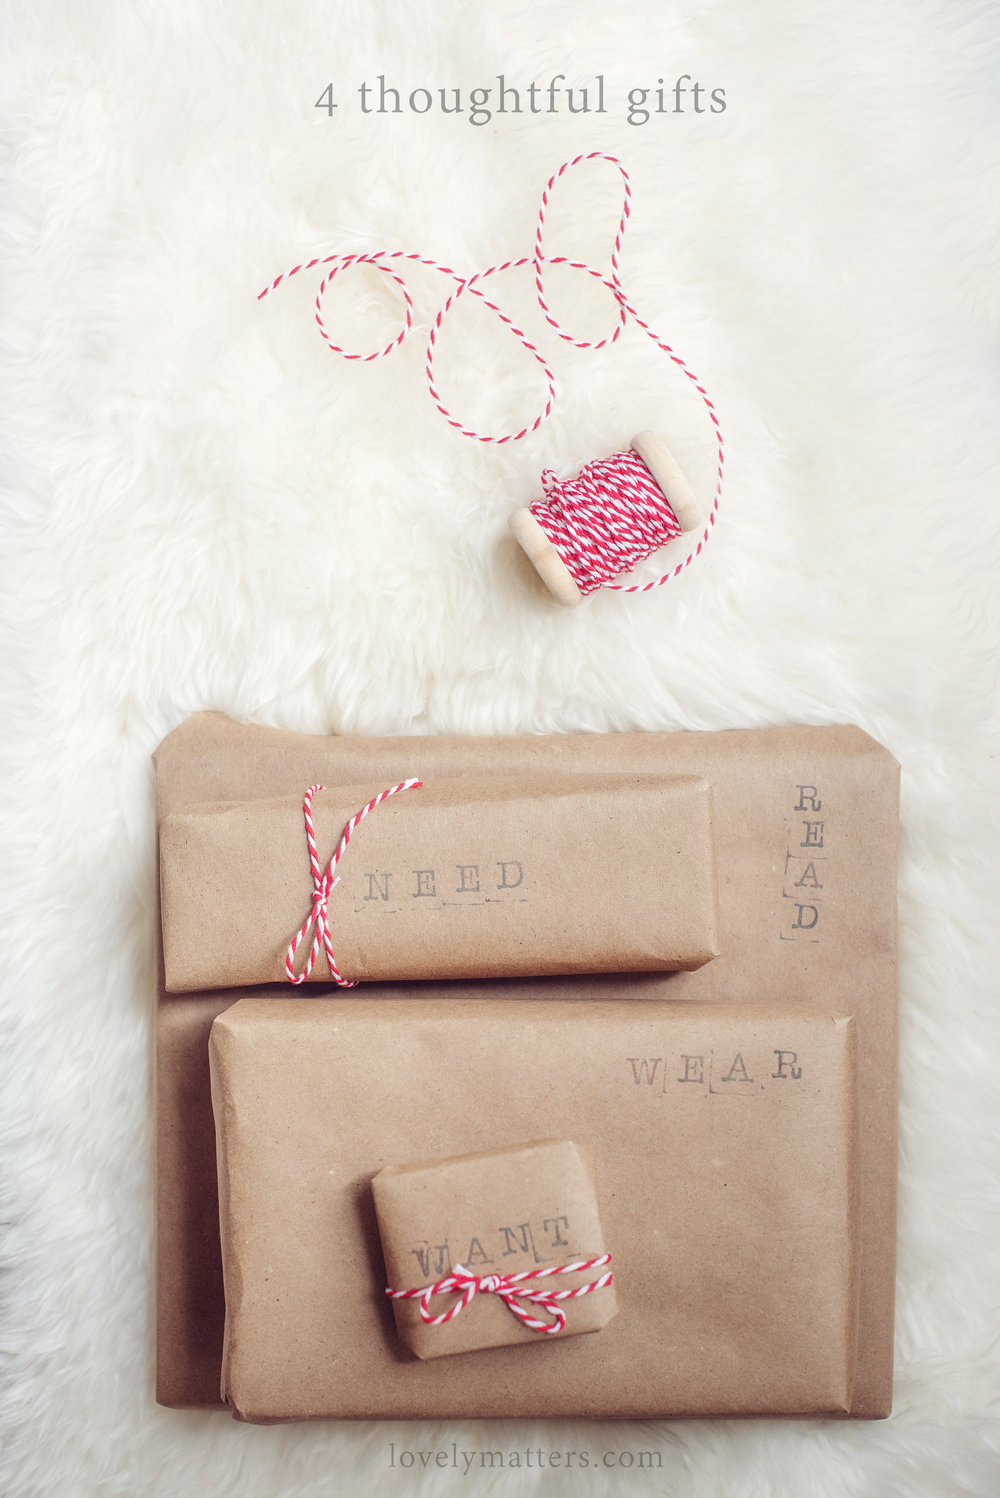 4 thoughtful Christmas gifts ~ lovely matters blog by Heather Walker ~ Christmas simplified